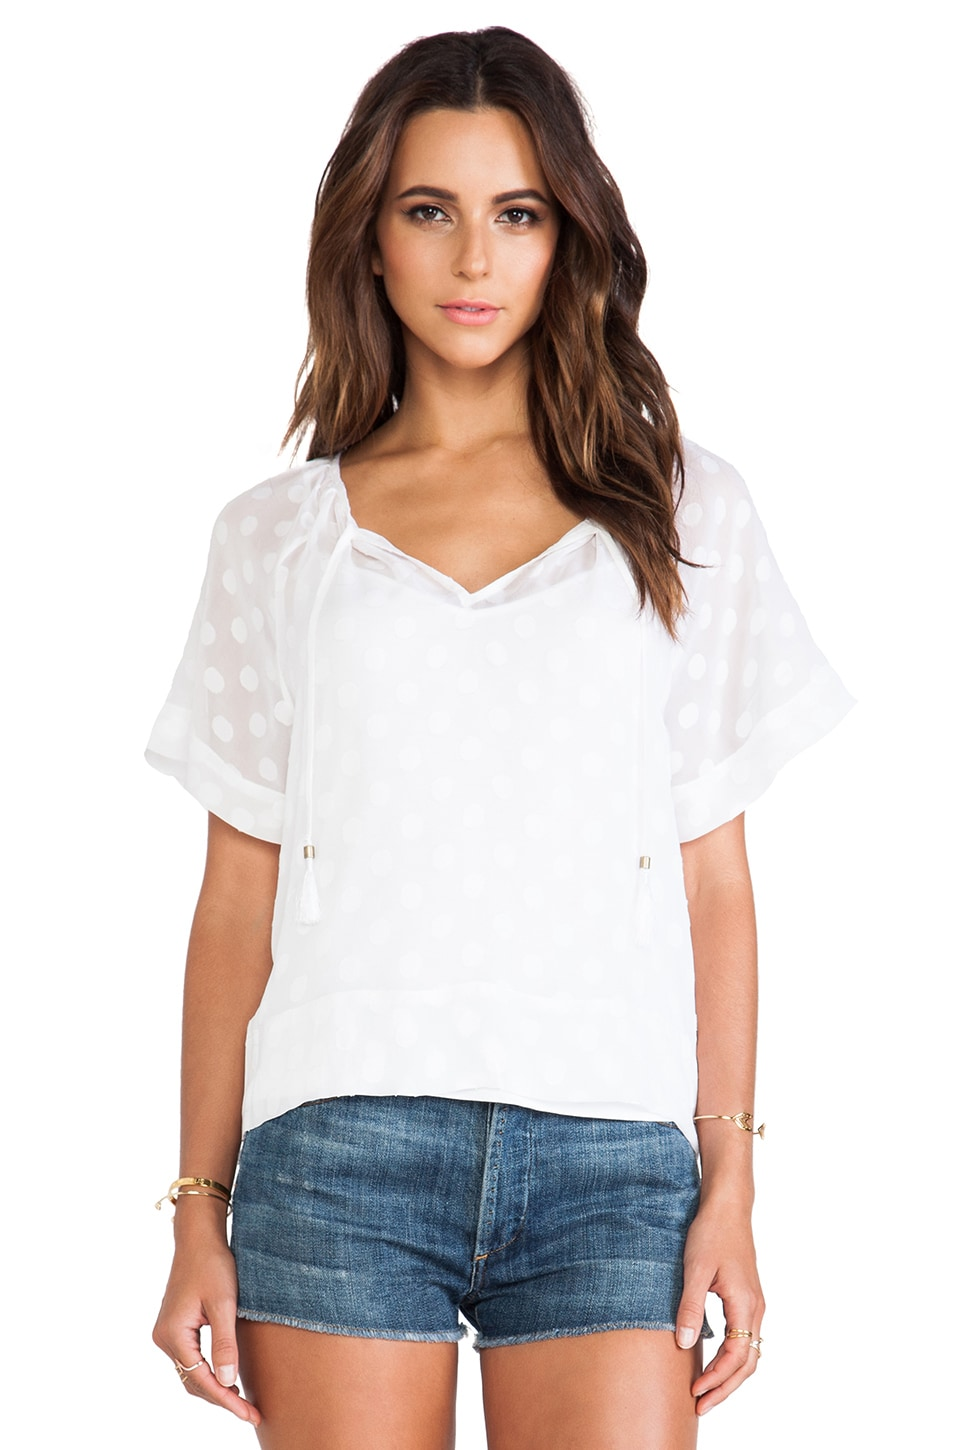 Ella Moss Sabine Top in White